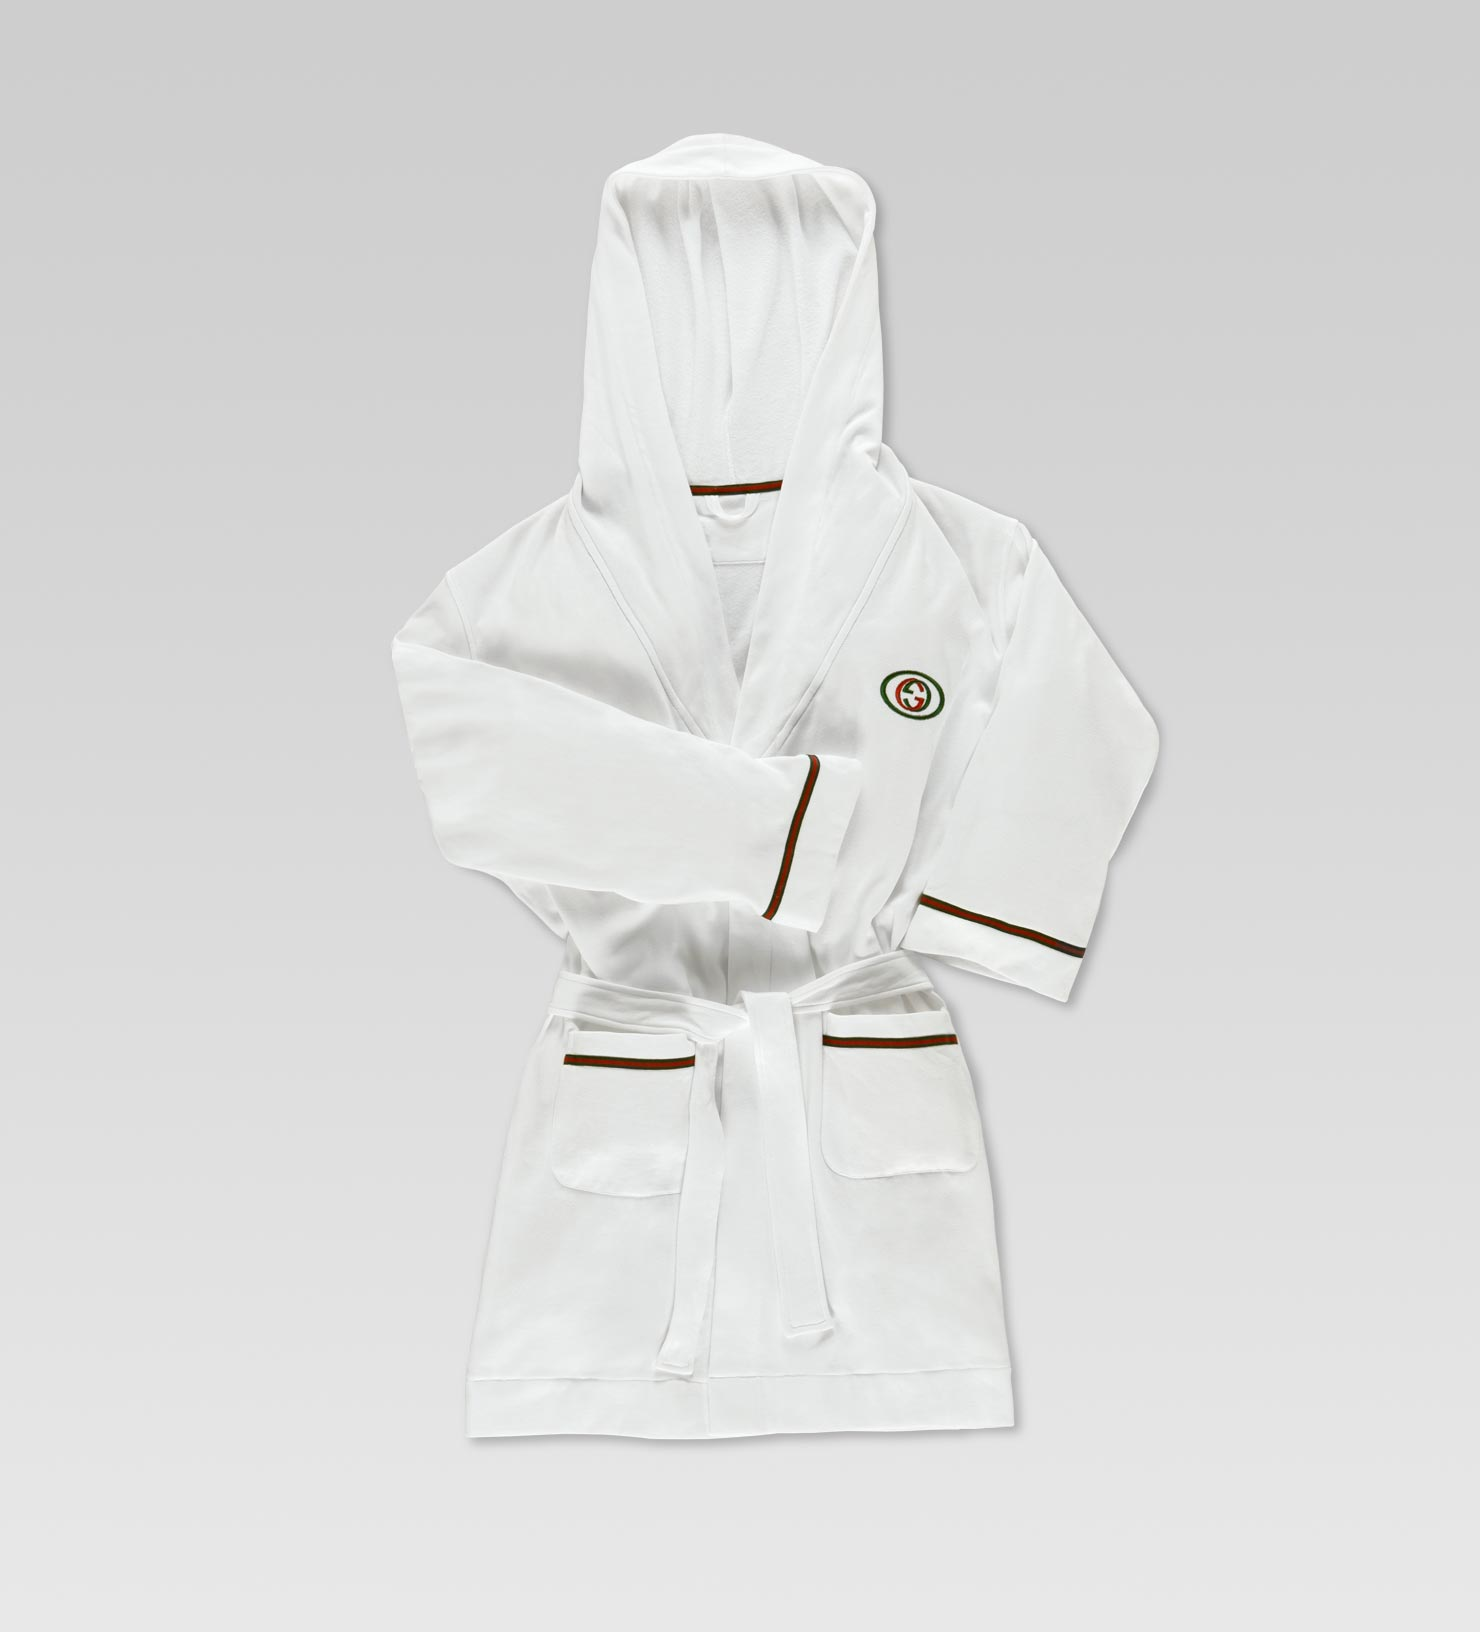 Gucci Bathrobe With Interlocking G And Signature Web Detail In White